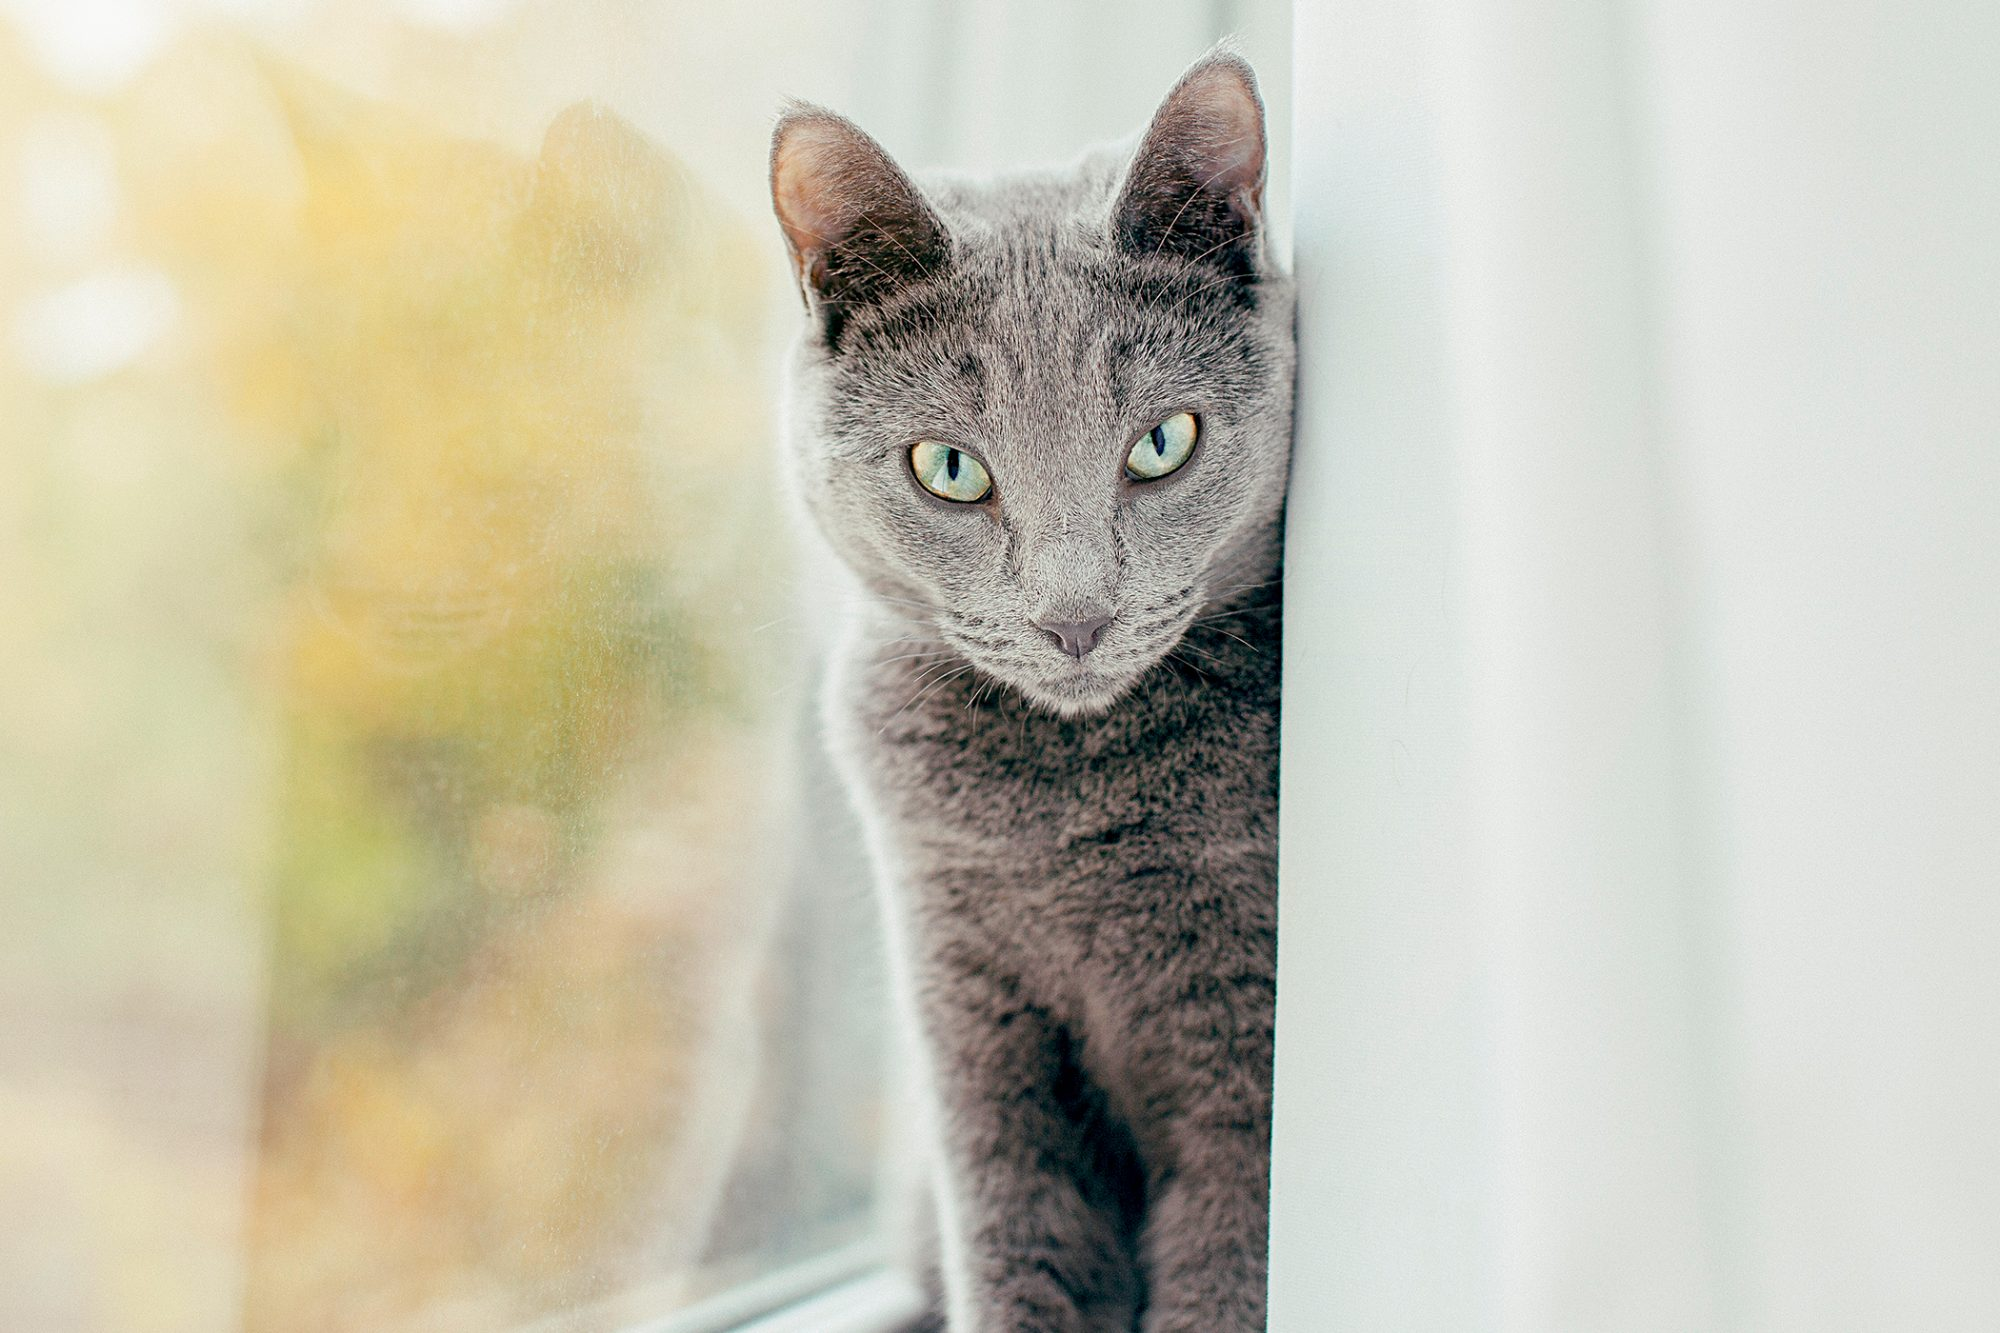 russian blue cat sitting behind window curtain looking at camera